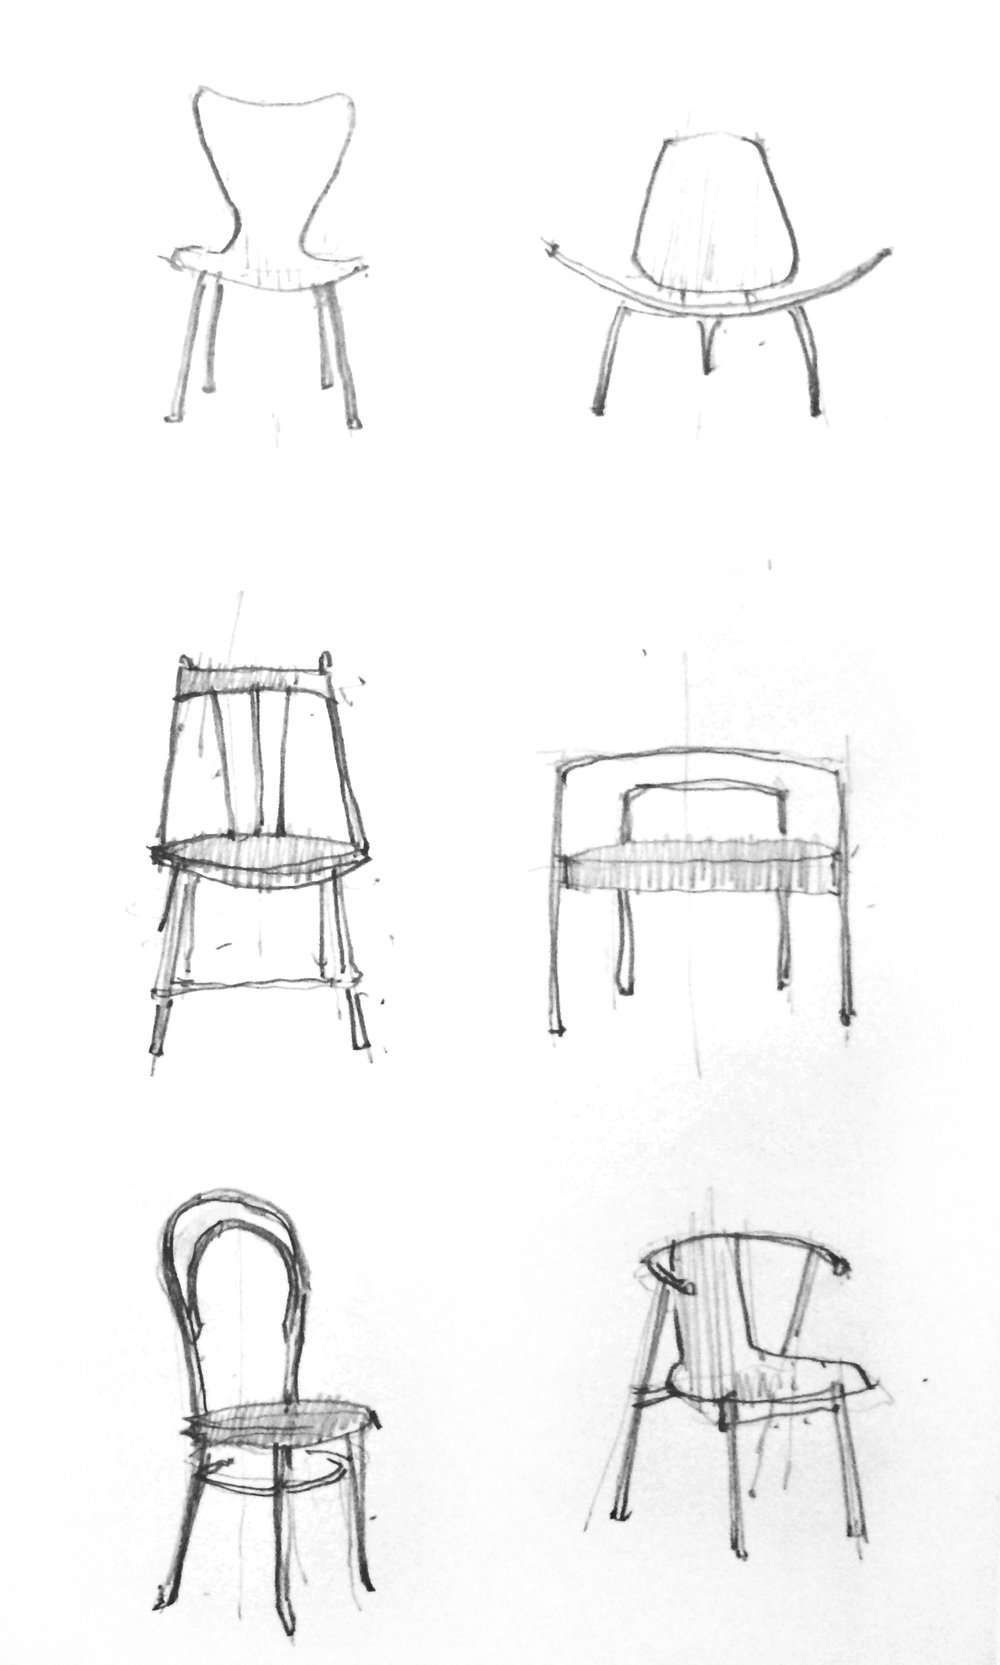 Danish chair series, author